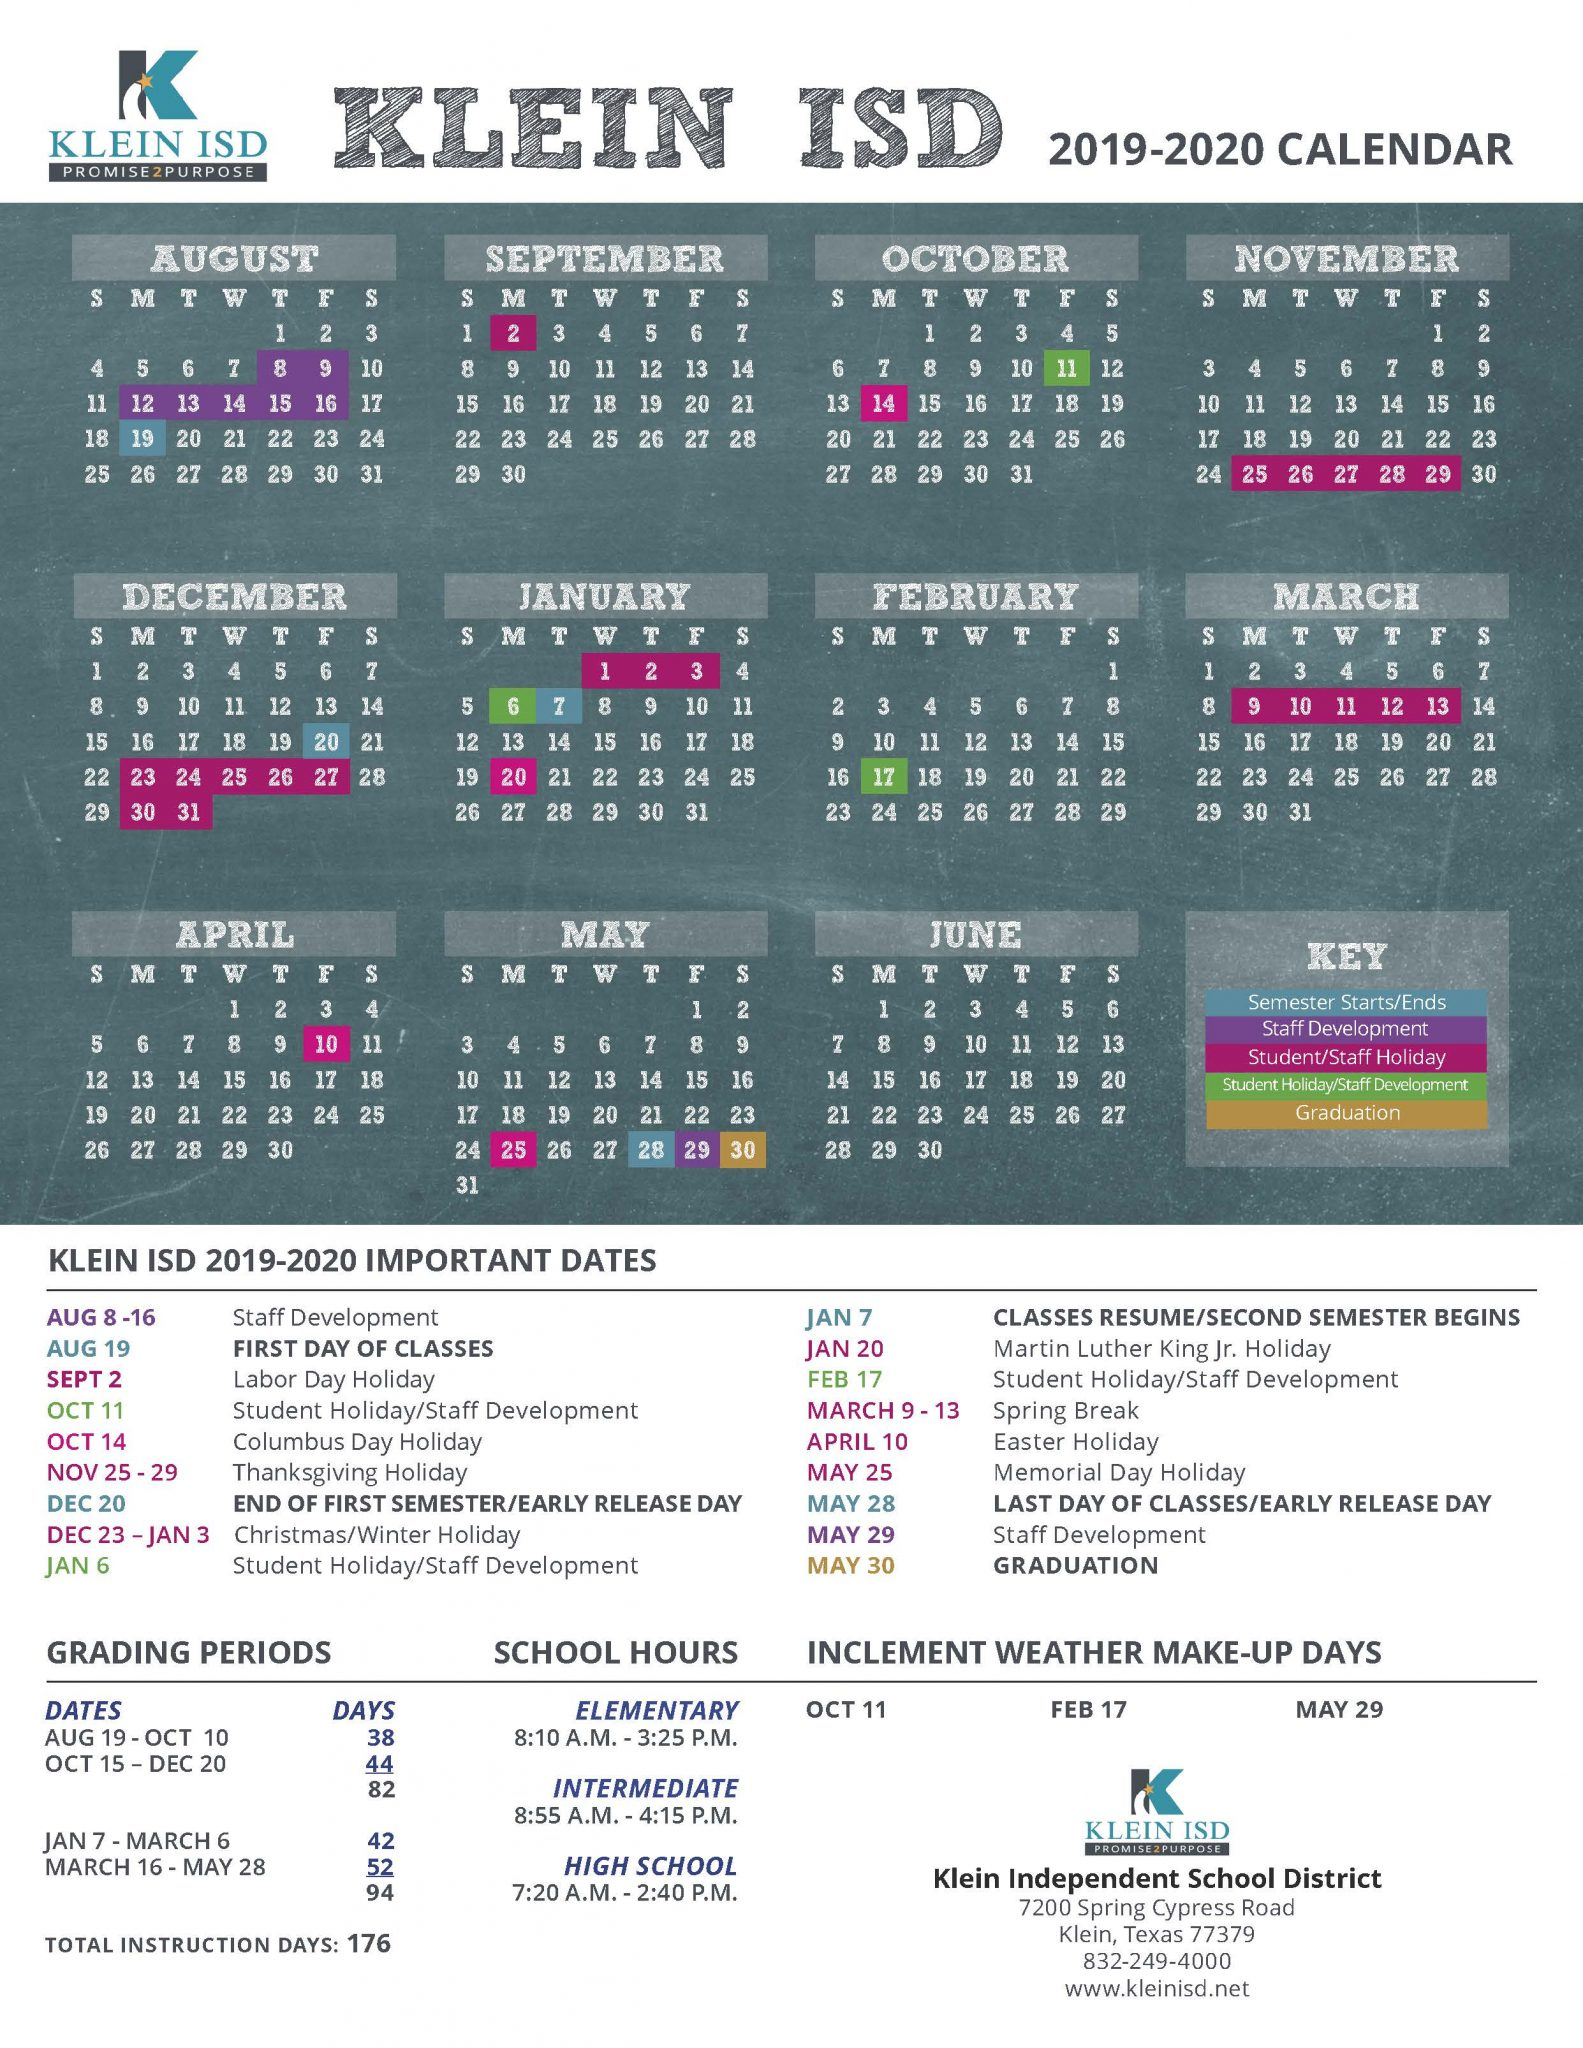 Klein Isd Announces Calendar For 2019-2020 School Year - Cain Live in Calender Of Special Days 2020